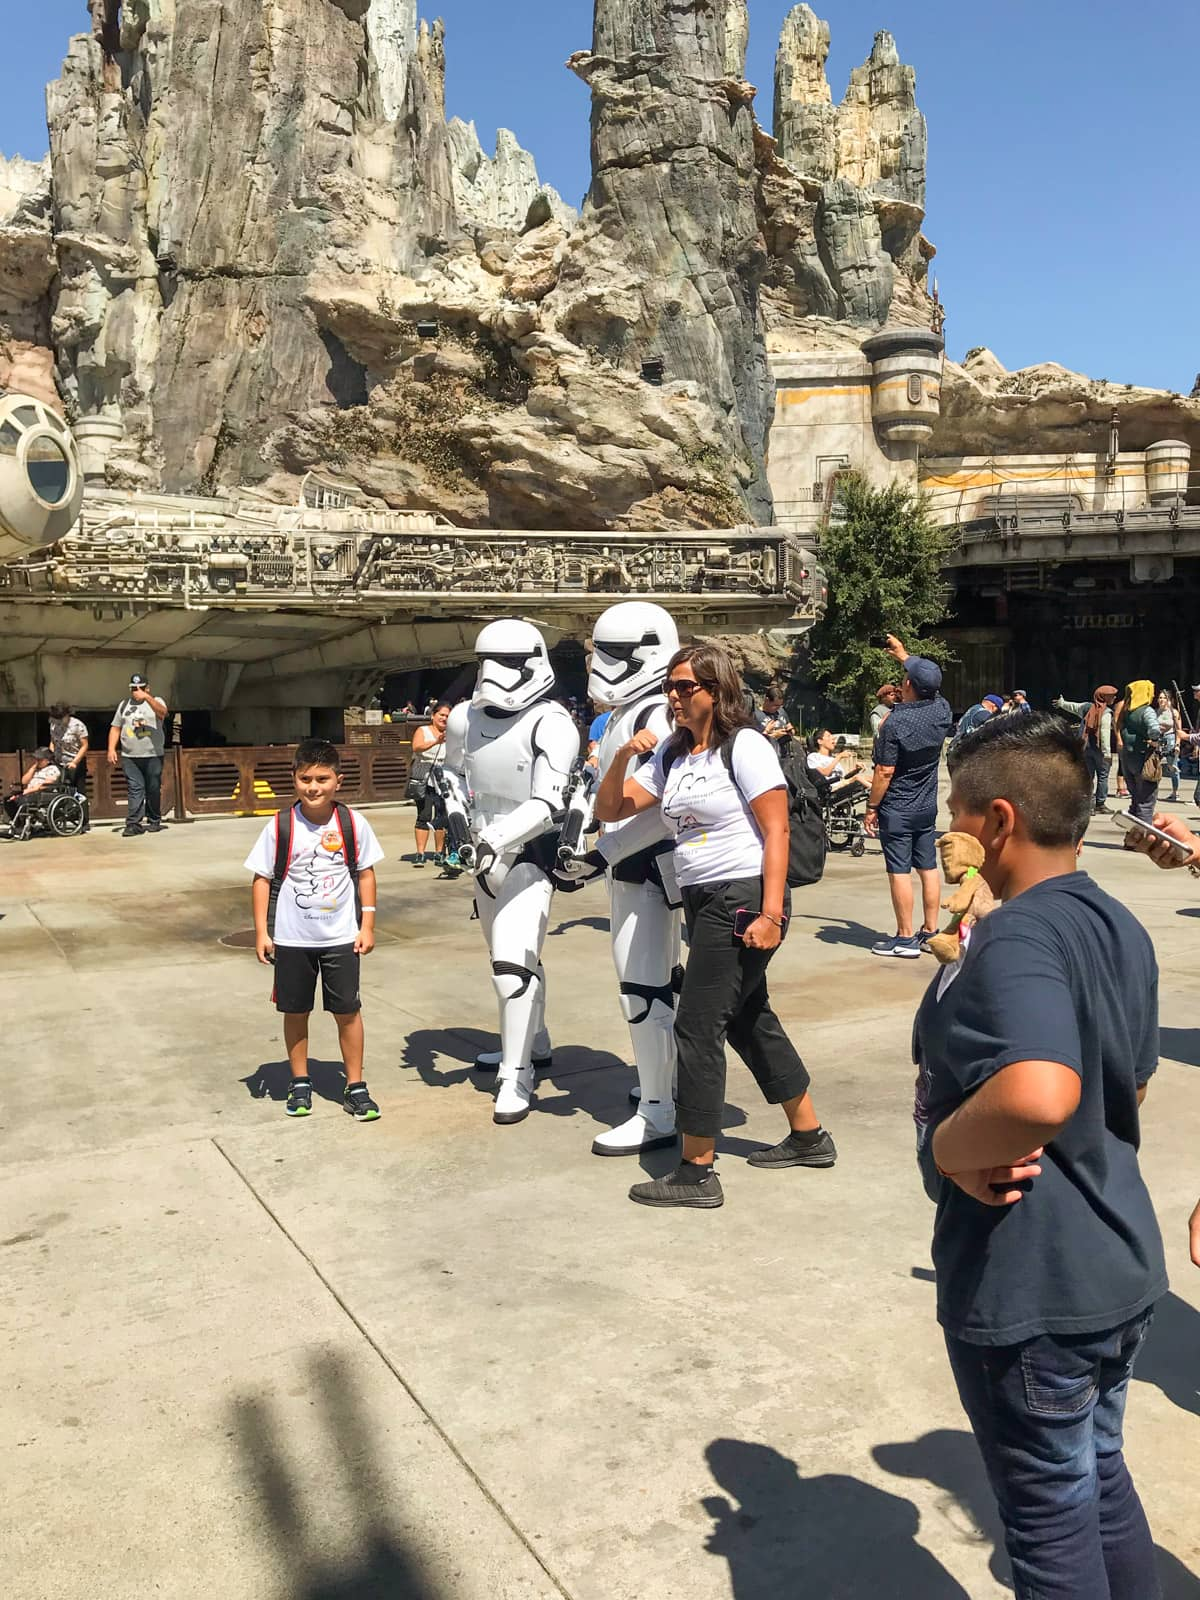 People dressed up in white astronaut-like costumes to resemble Stormtrooper characters from Star Wars, in a theme park with several people surrounding them to take photos with them